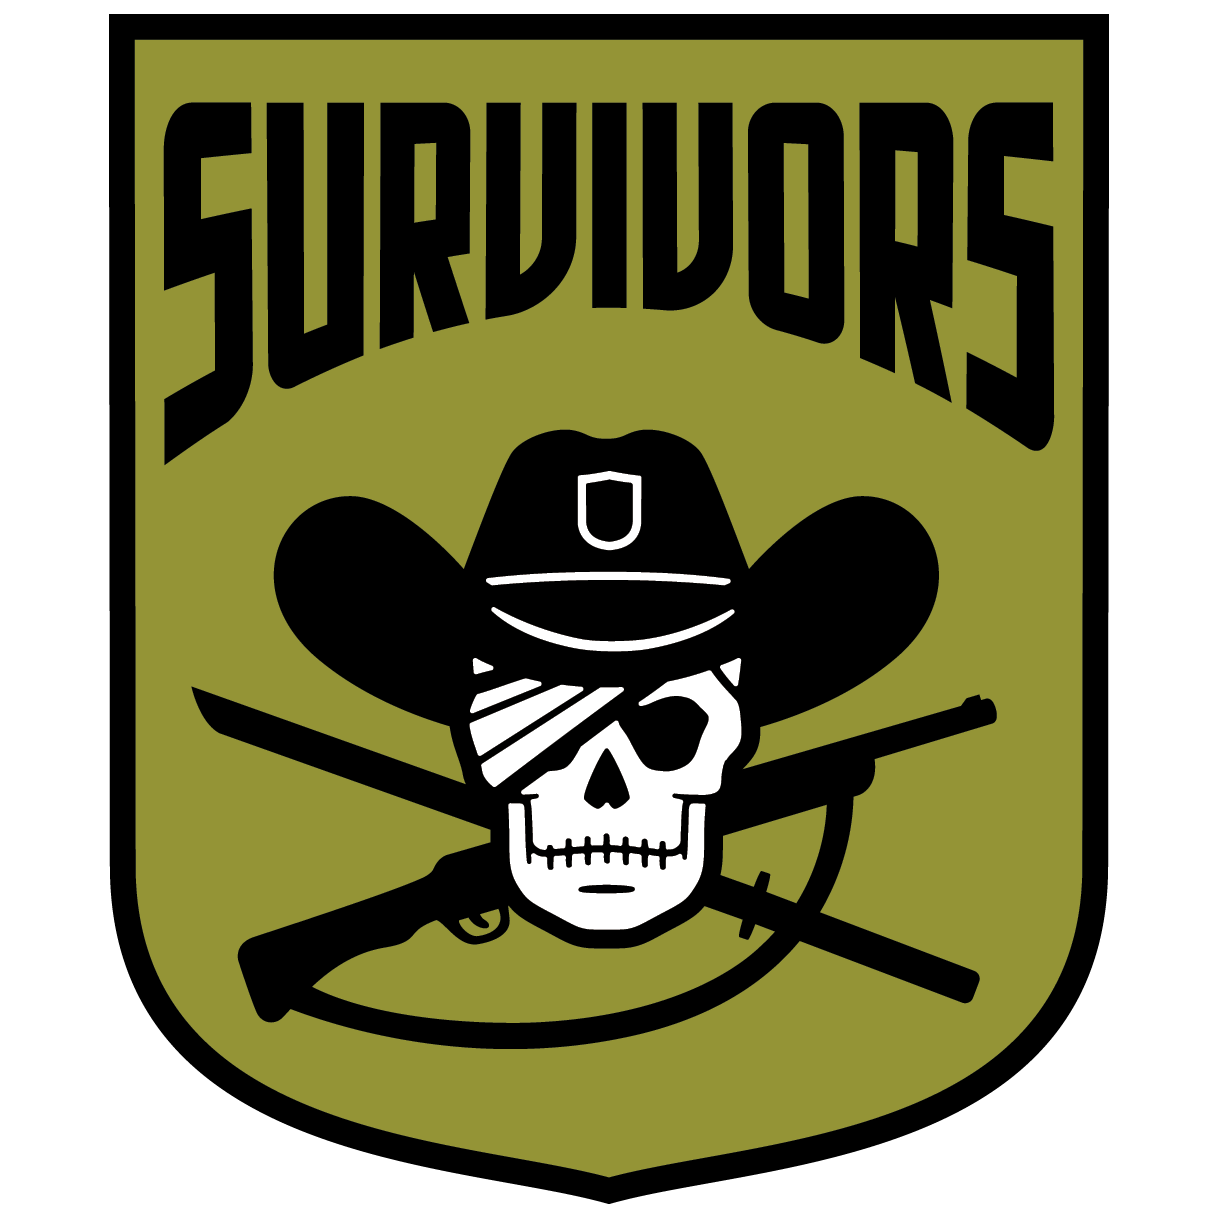 THE WALKING DEAD - Survivors Faction Pin